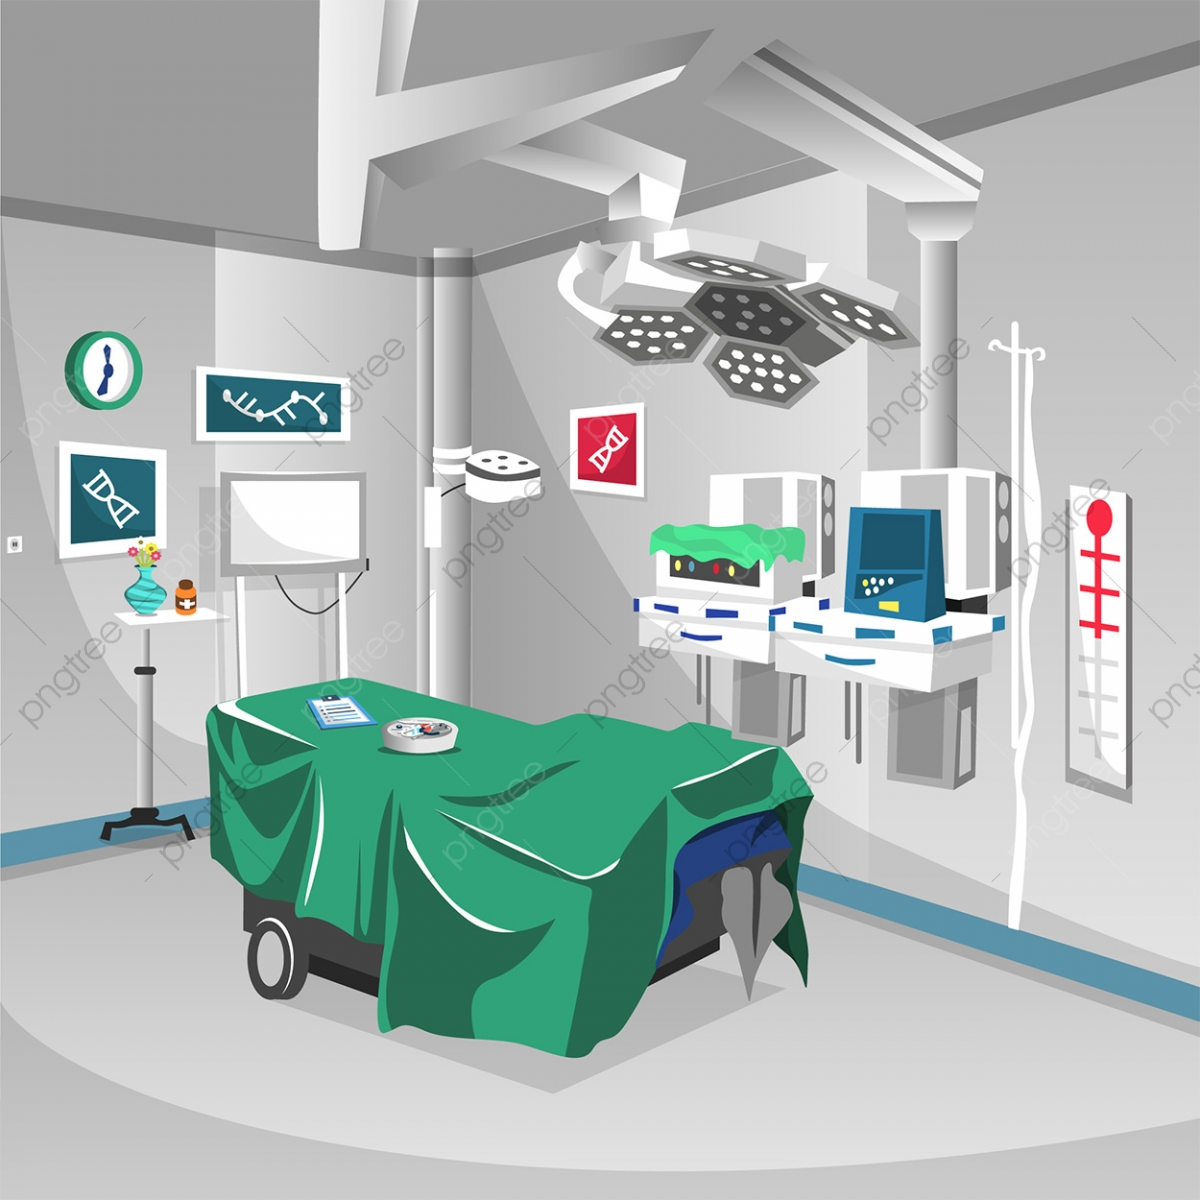 Clean Surgery Room At Hospital With Lamp Modern Operation